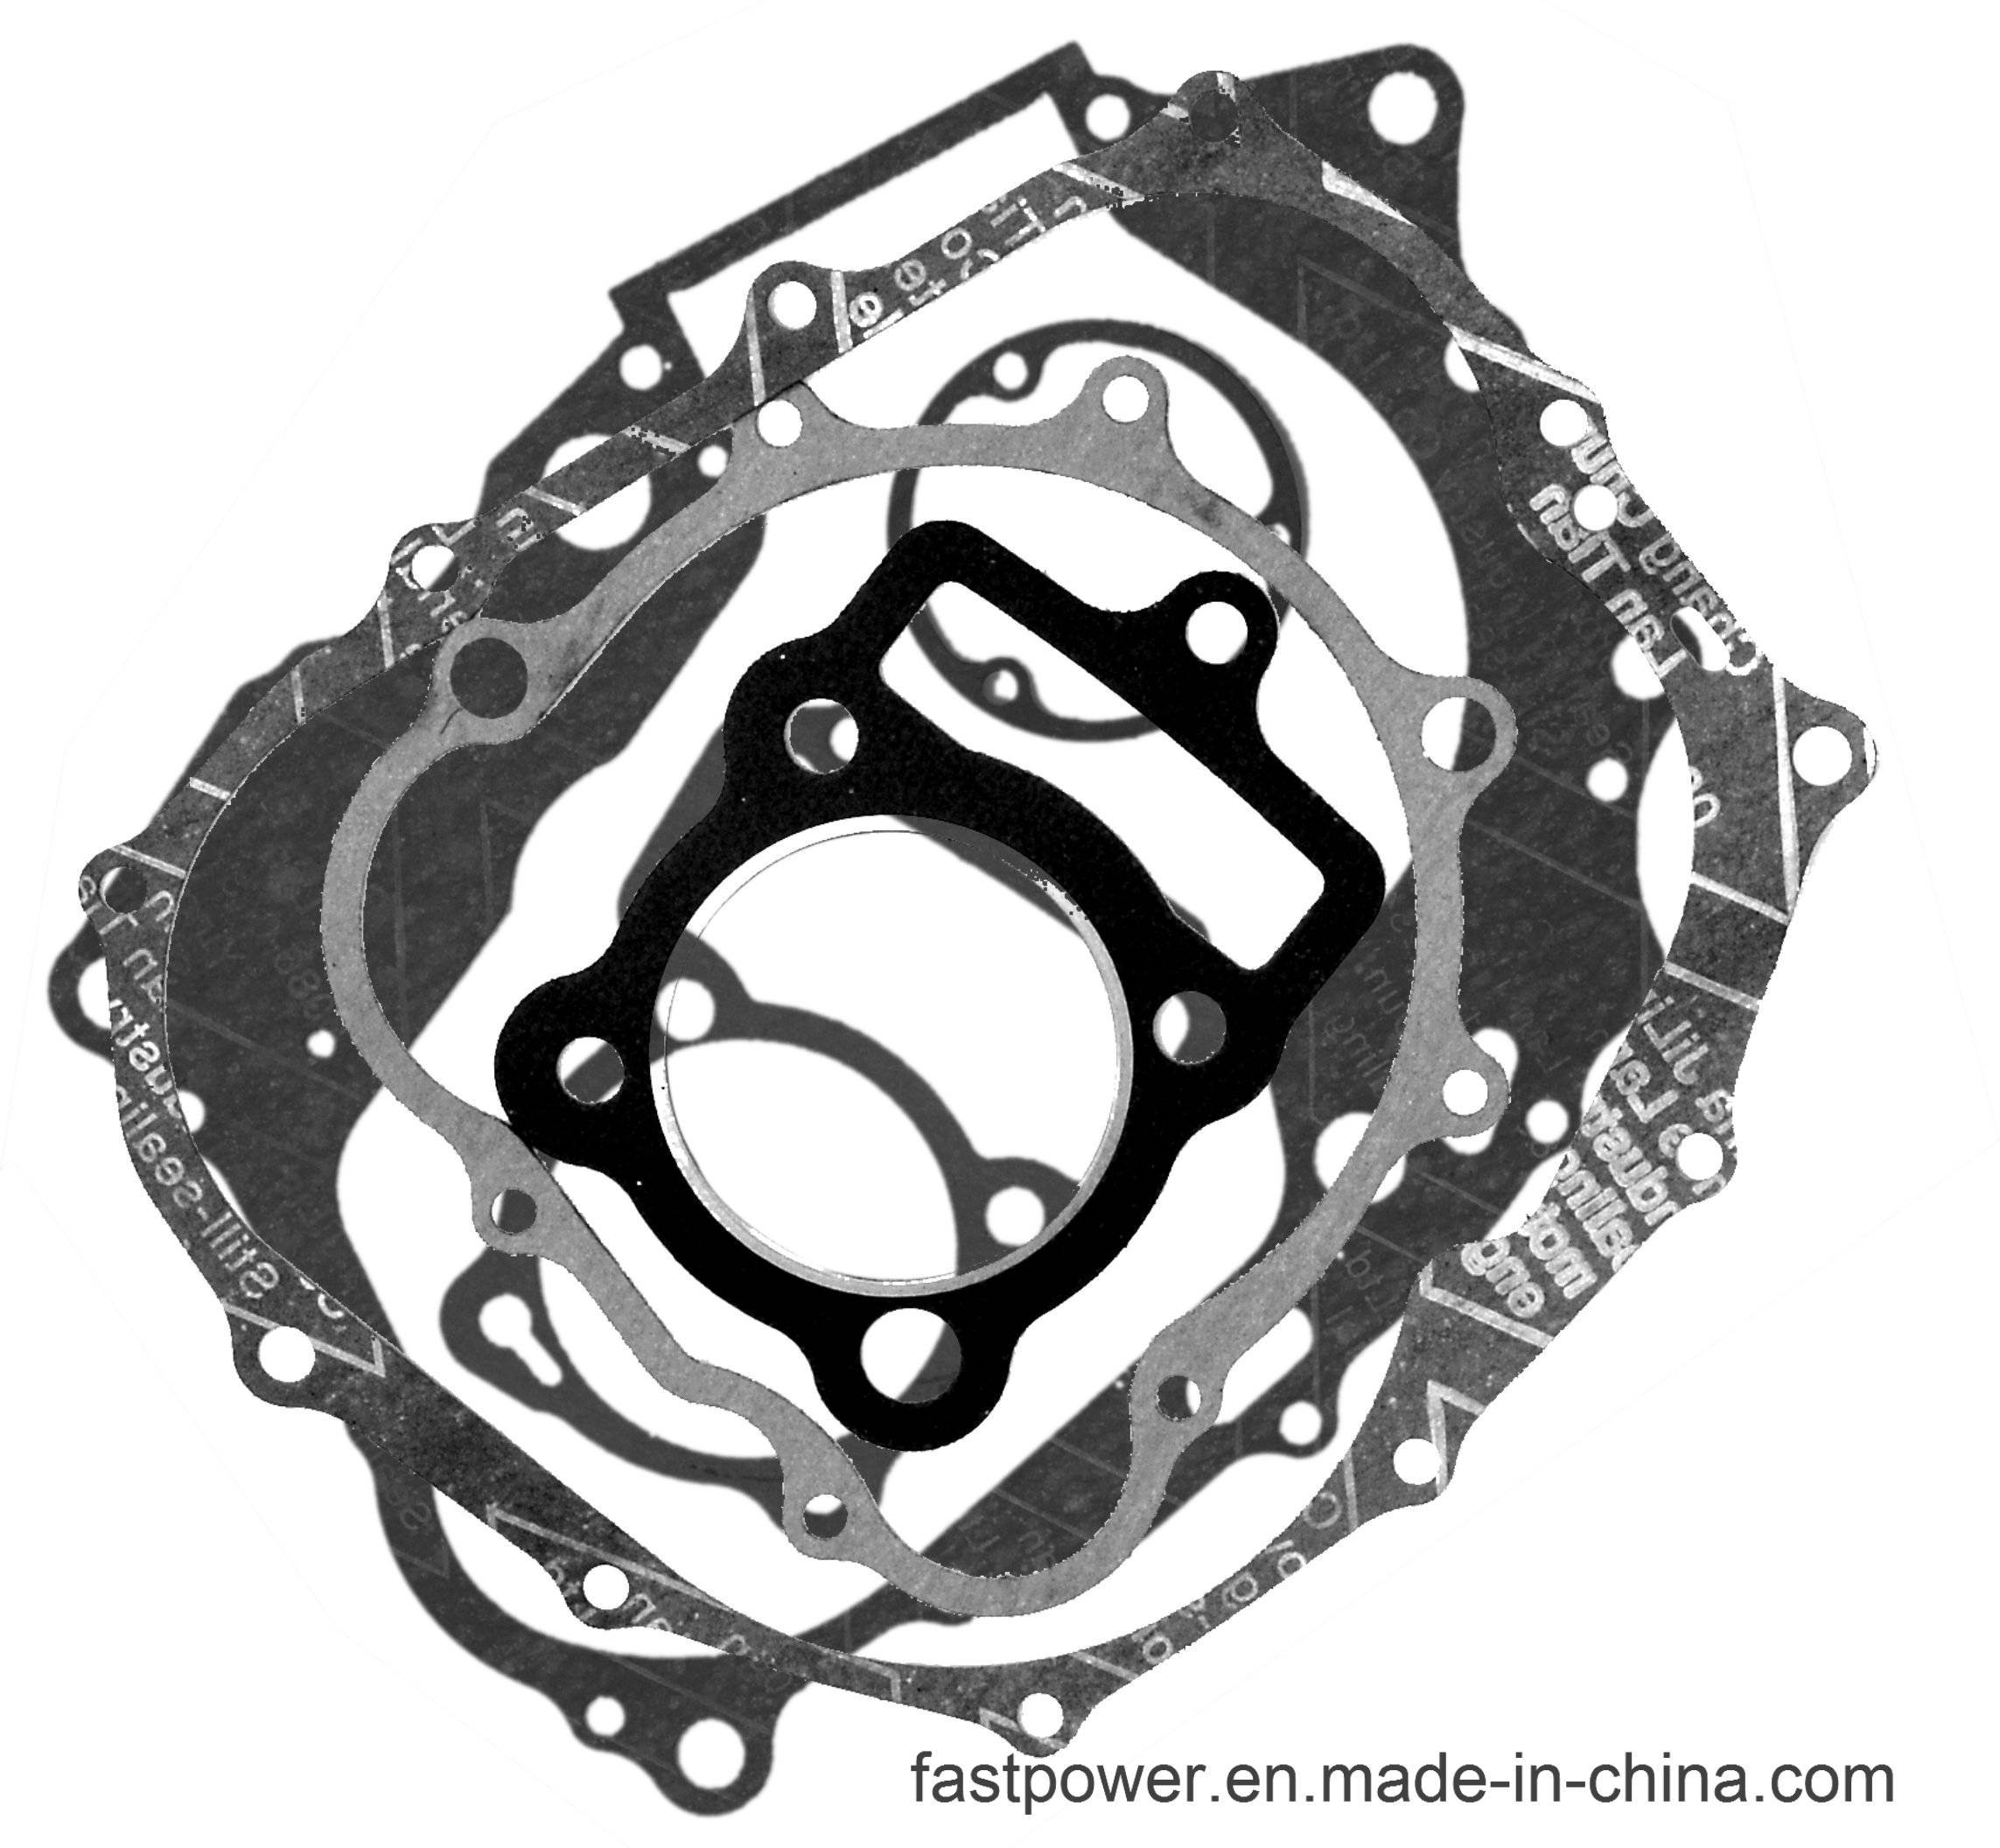 Motorcycle Spare Parts Engine/Cylinder etc. Gasket